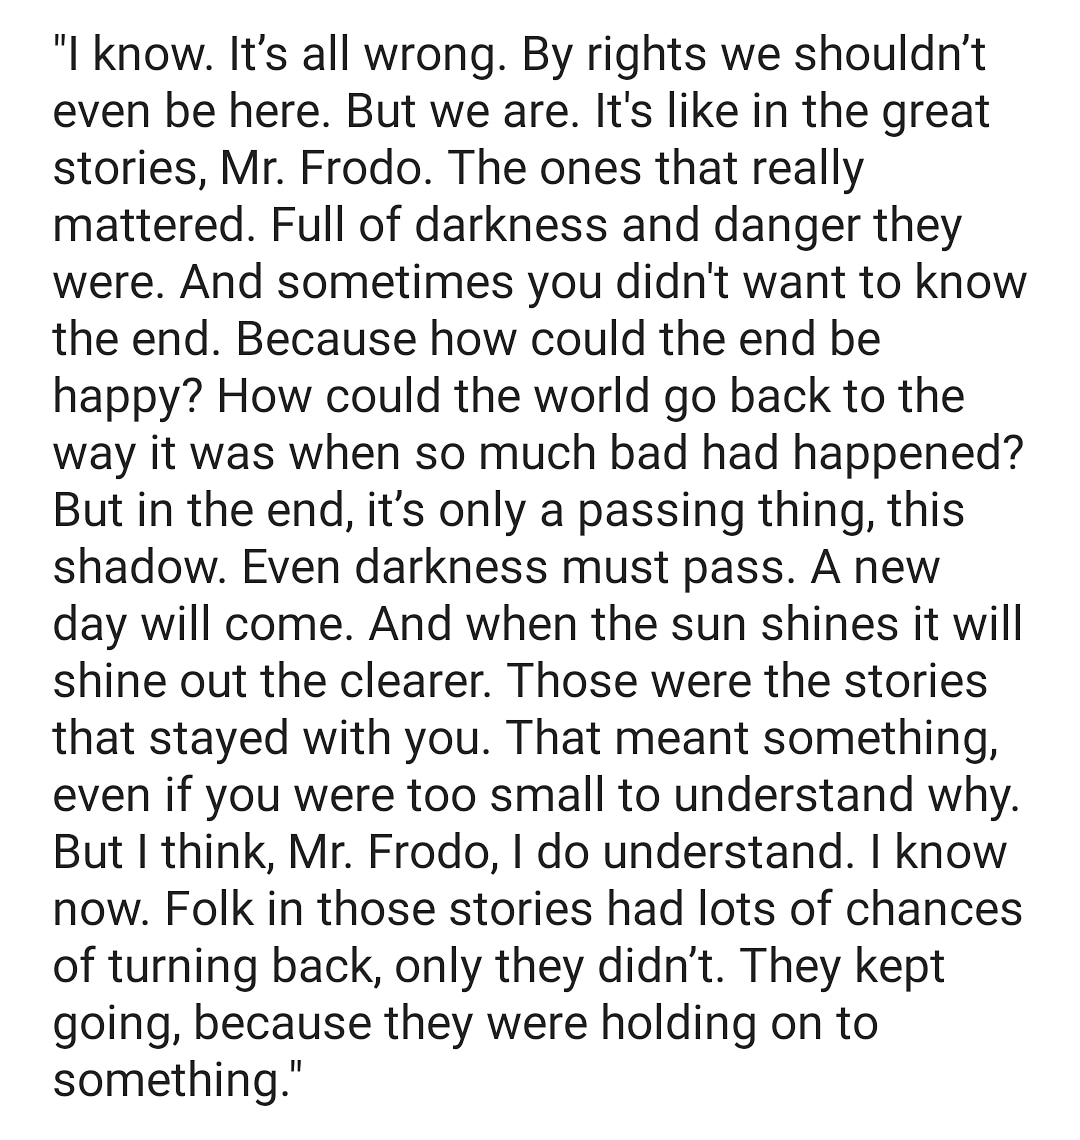 I feel like all the front line responders to COVID-19 and the 2nd line supporting them are like Frodo and Sam. This is a reminder for myself & for others.  God bless you all - doctors, nurses, hospital admin and facilitiesstaff, cops, soldiers, volunteers etc.  #WeAreAllFighters https://t.co/DxkNuIAOIU